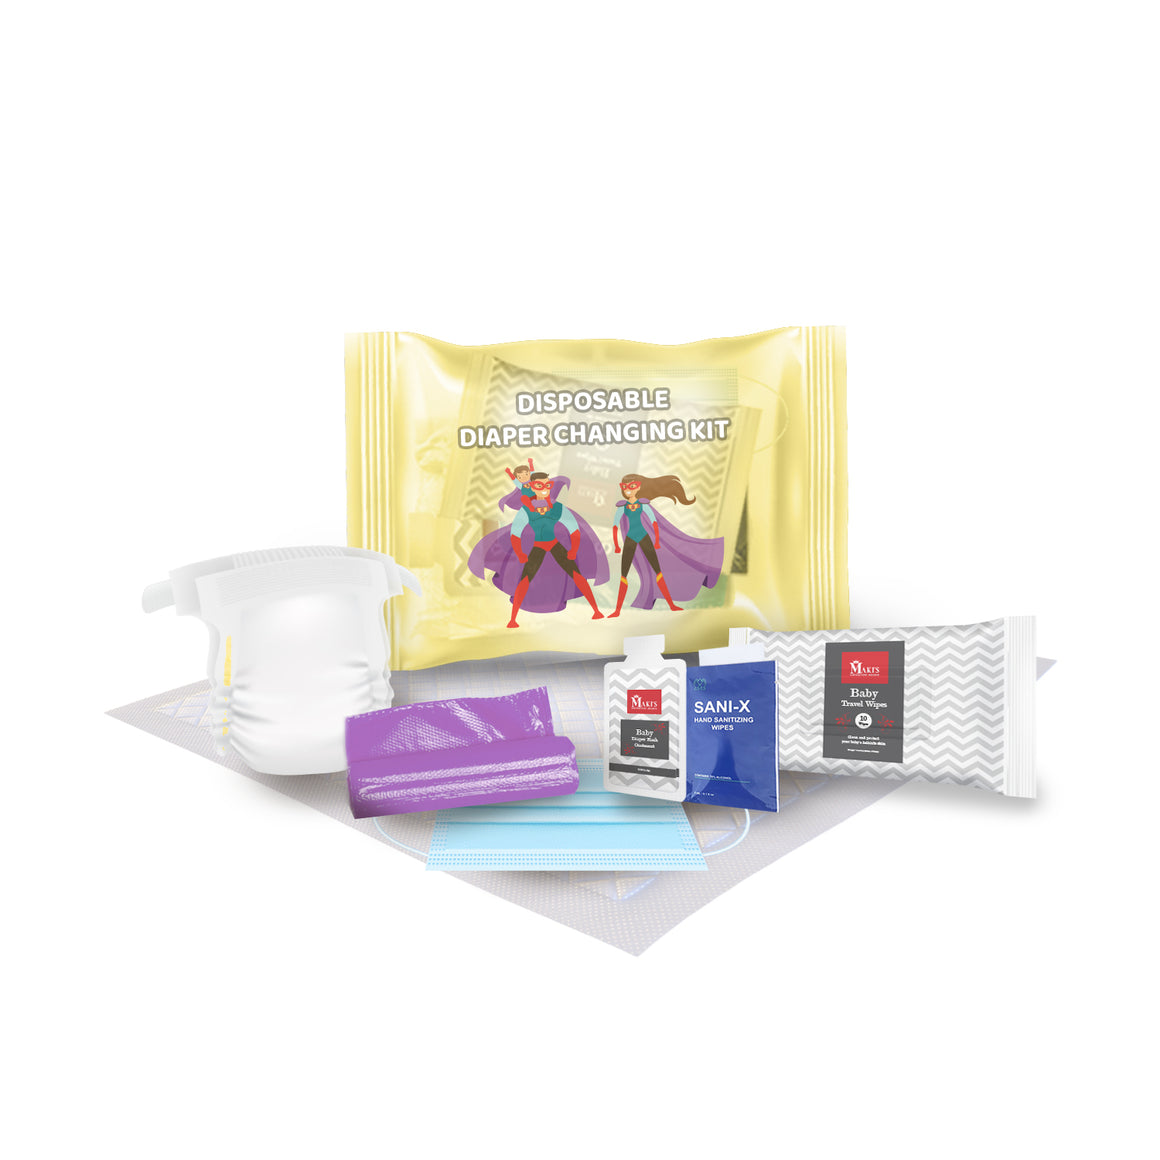 Disposable Size 3 Diaper Changing Kits for Baby On-The-Go